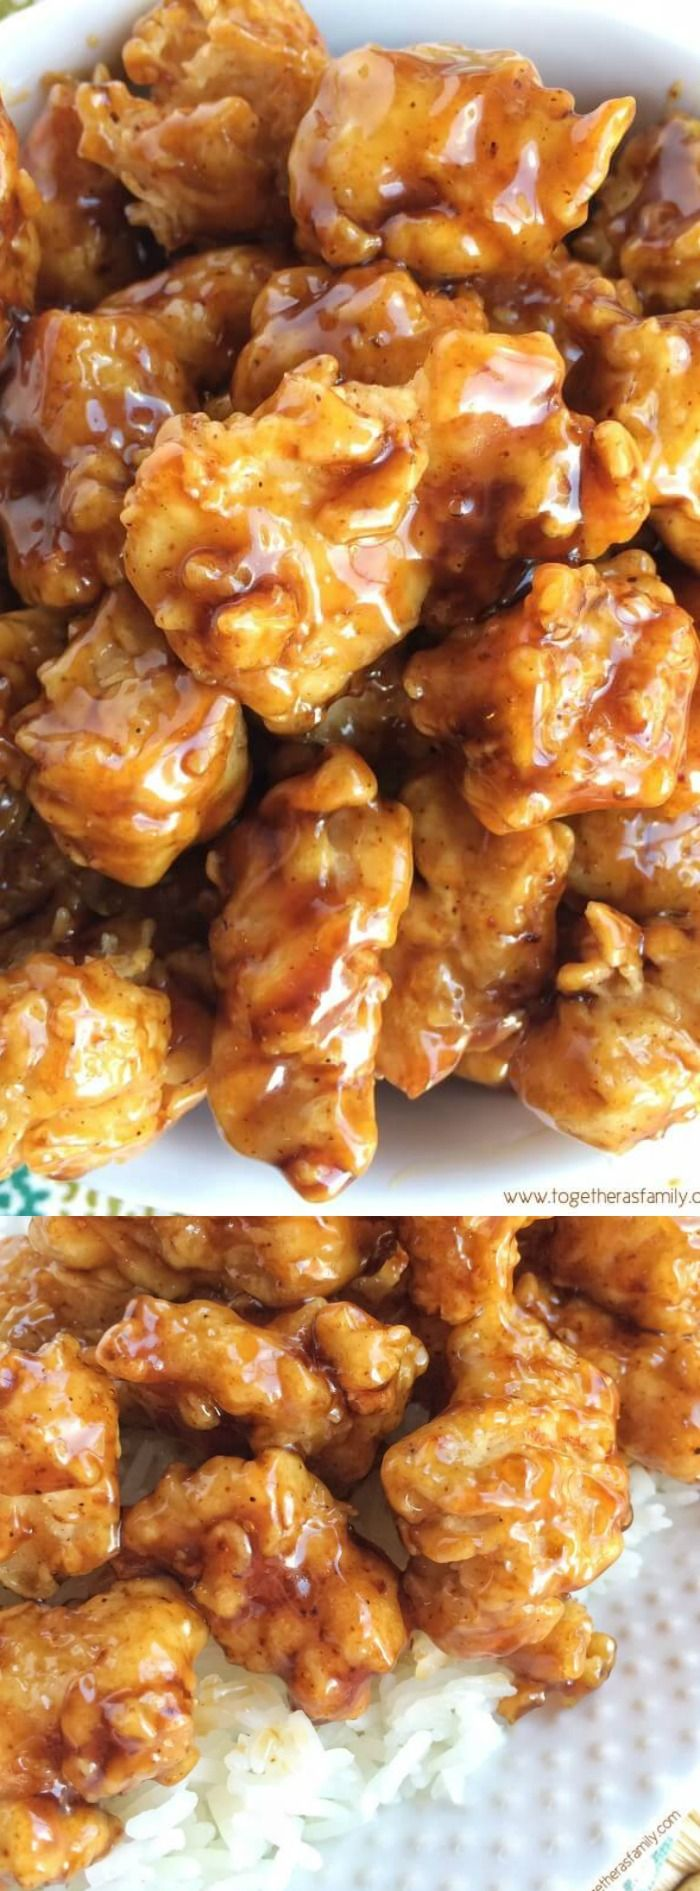 6136 best delicious yum yums images on pinterest easy cooking this crispy honey chicken from together as family turns out so incredible and delicious the forumfinder Choice Image